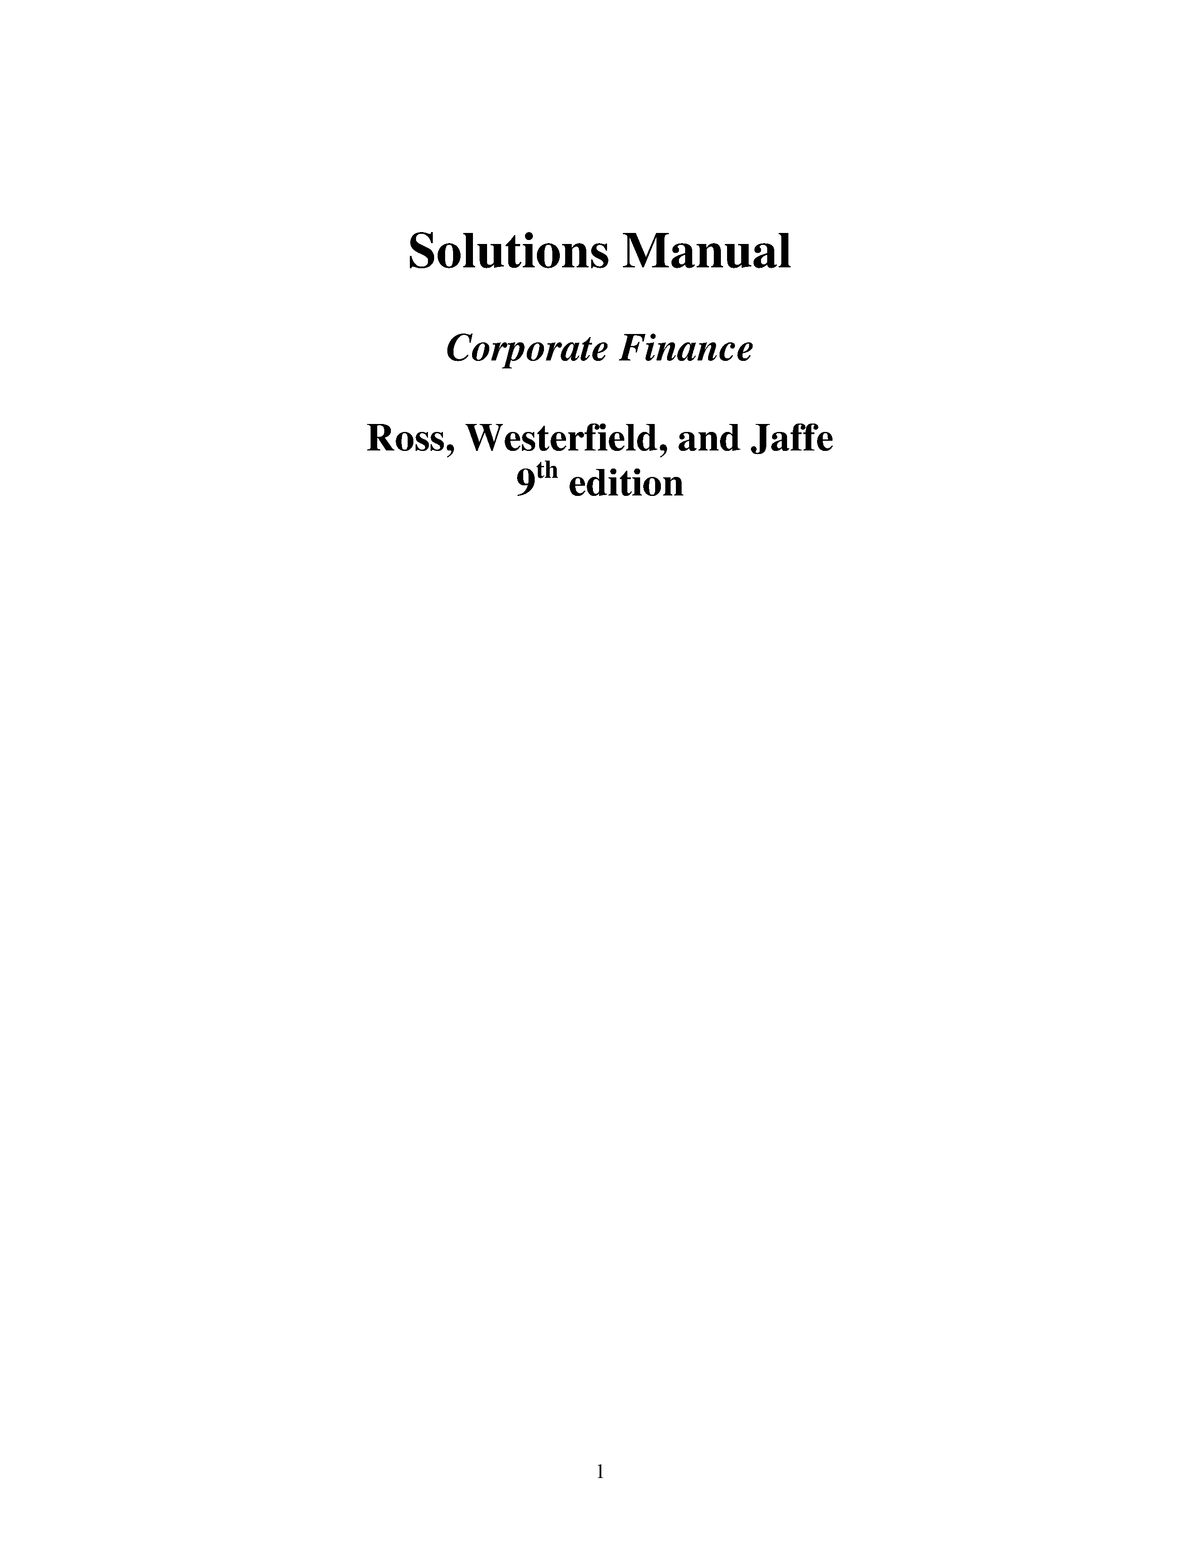 Solutions Manual Corporate Finance 9th e - StuDocu